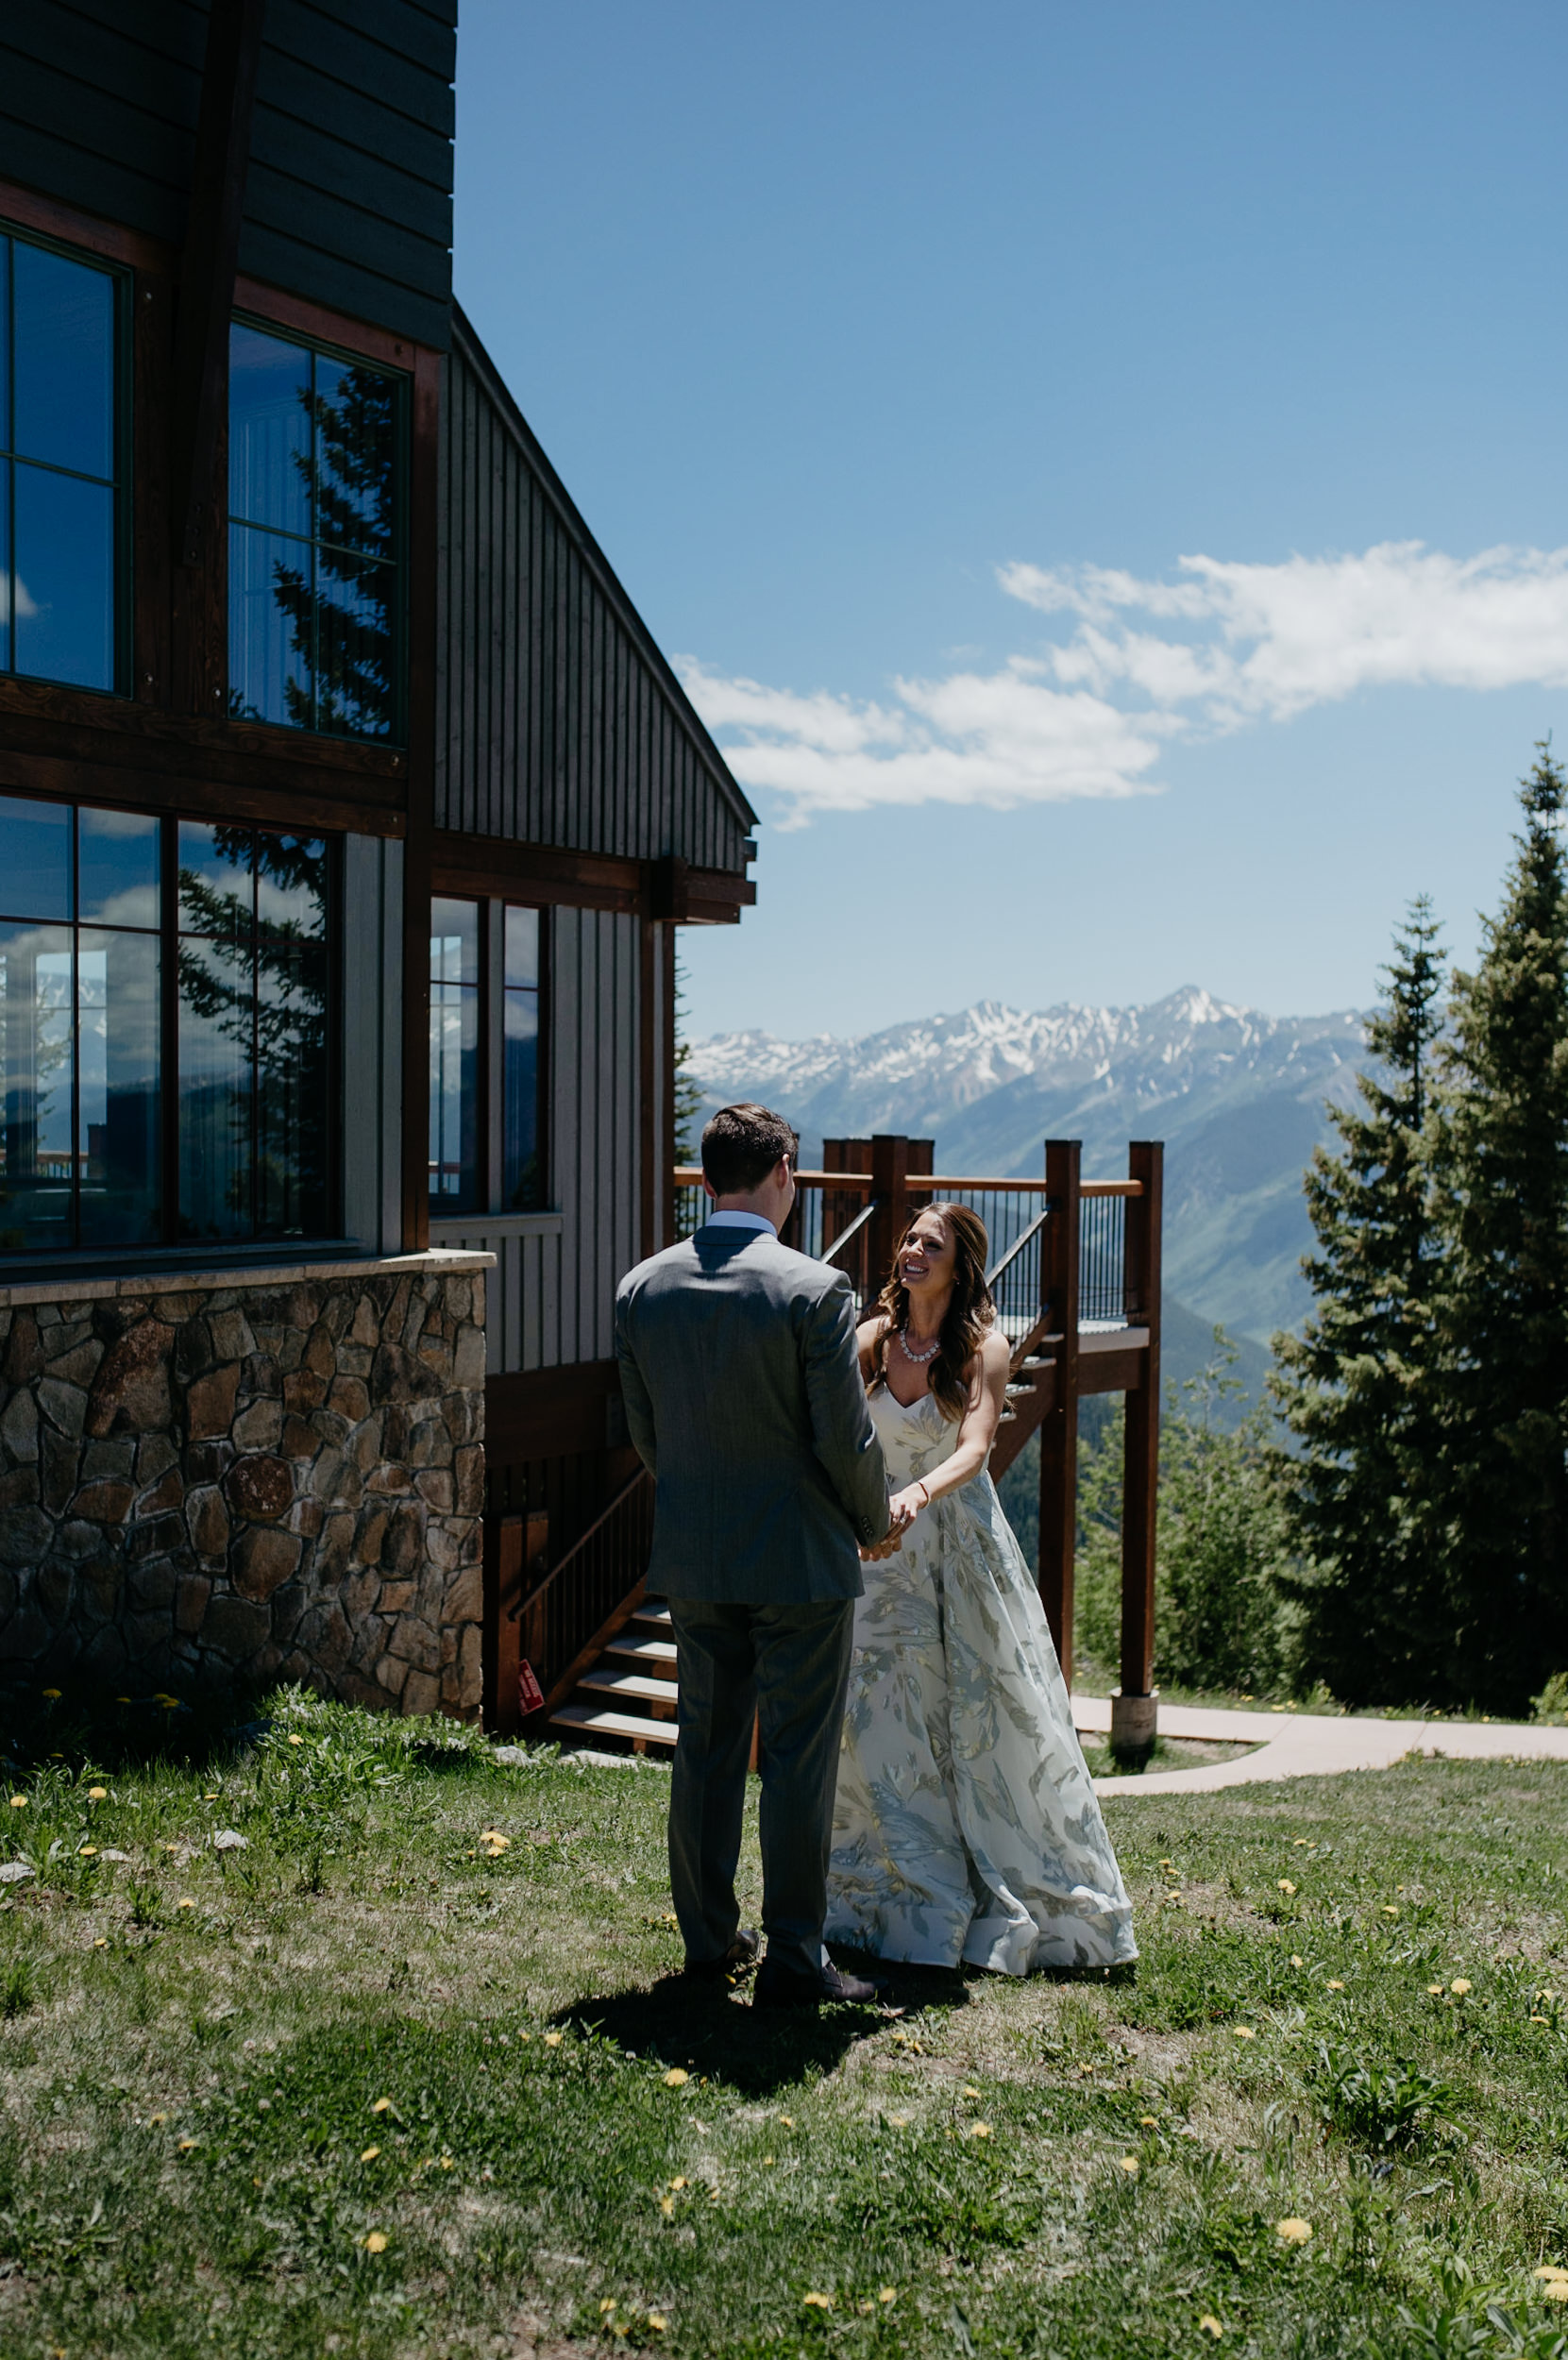 First look at The Little Nell in Aspen, Colorado. Aspen wedding and elopement photographer.